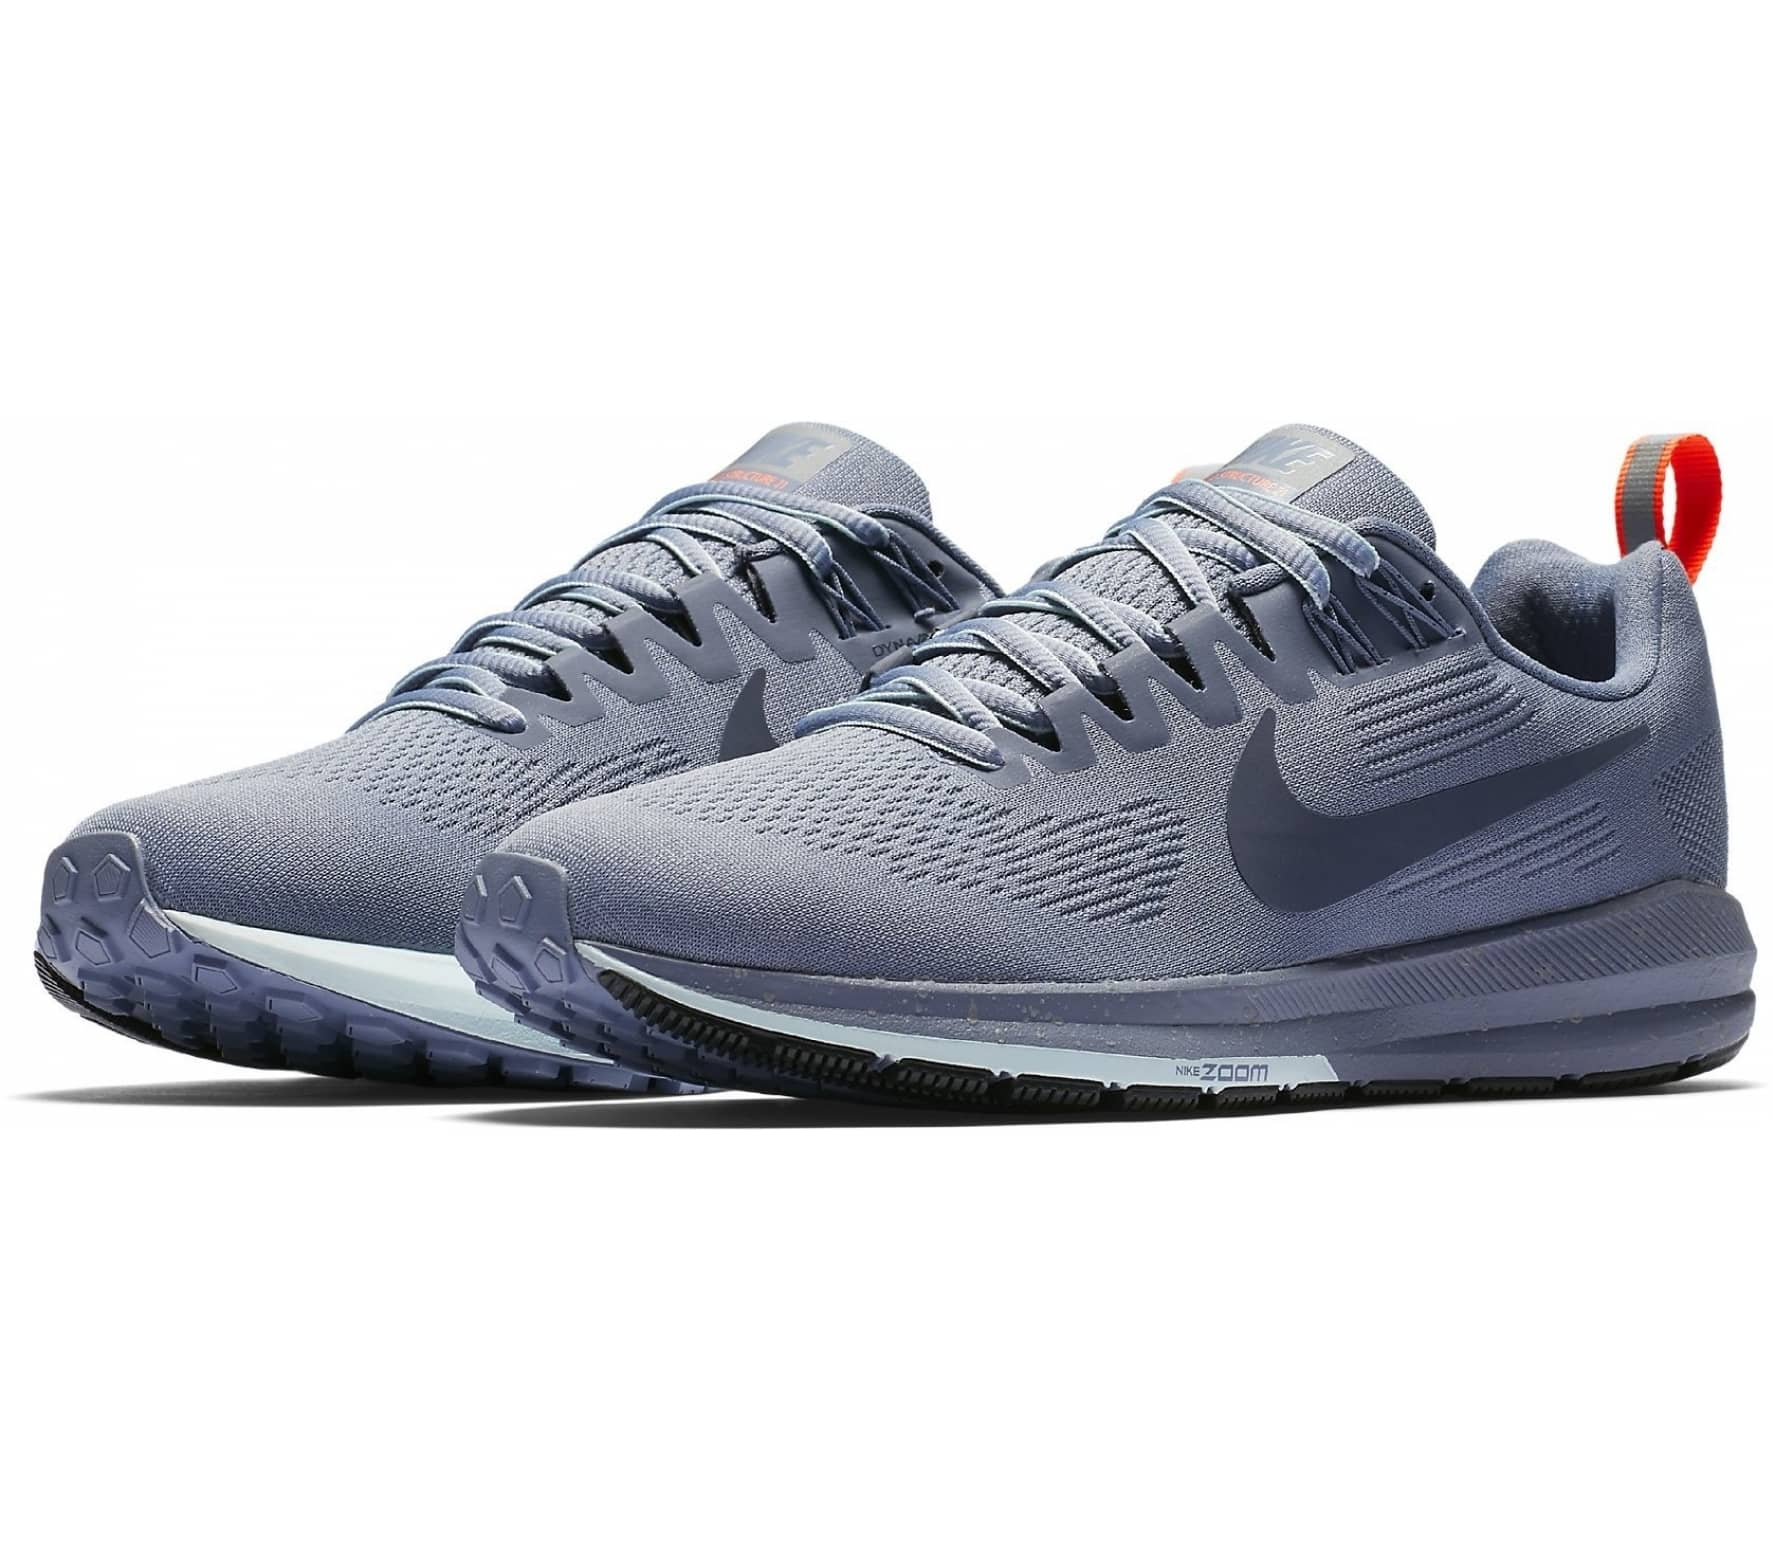 premium selection d126c eb53a ... new zealand nike air zoom structure 21 shield womens running shoes blue  grey f9bd1 be6dd